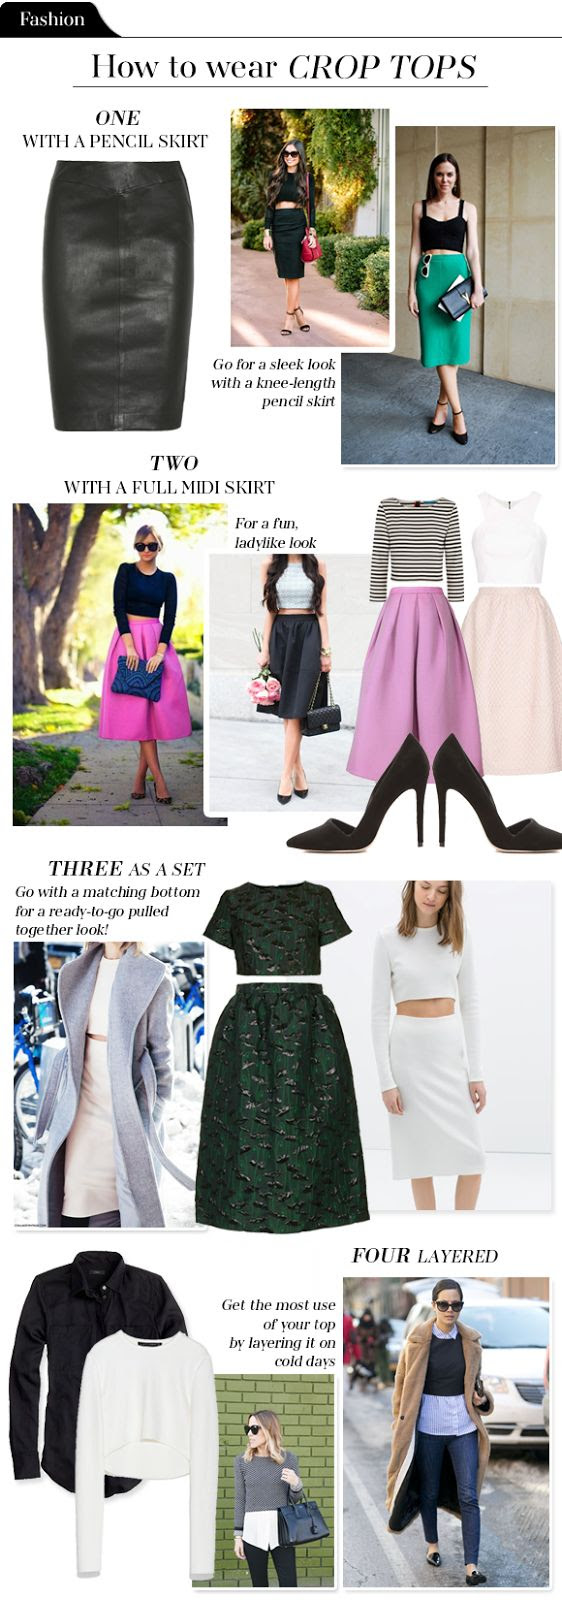 Fashion File: How to wear crop tops - The vault files